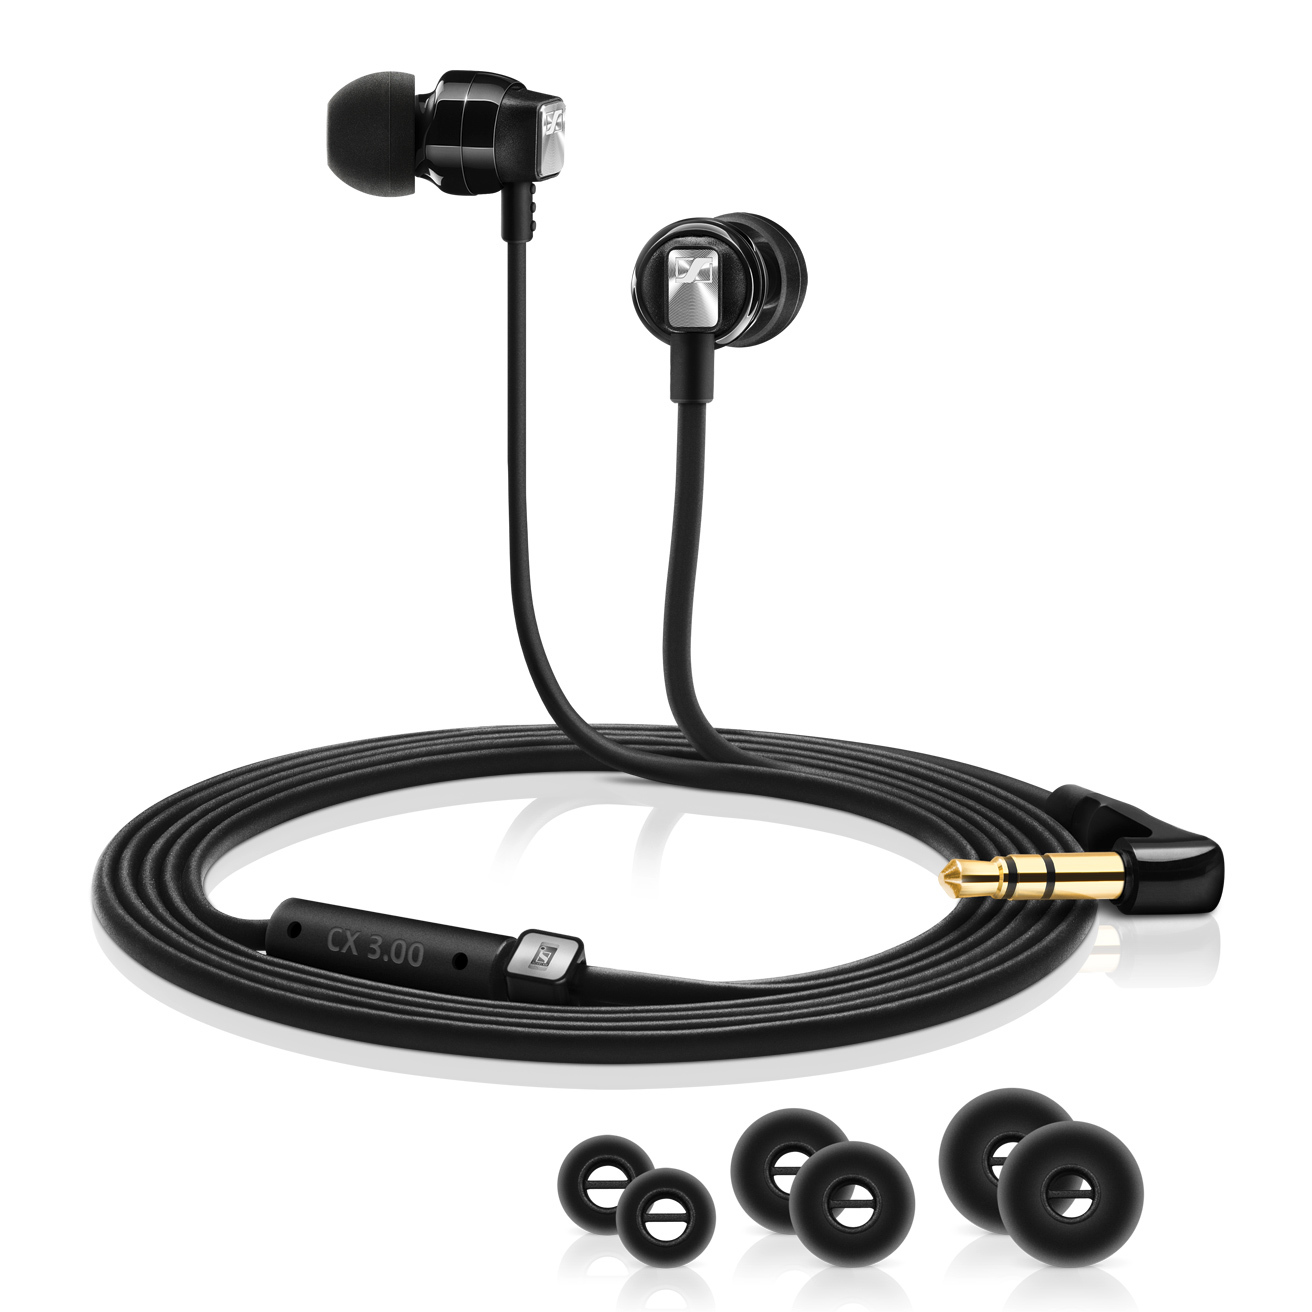 Sennheiser CX 3.00 Black / White